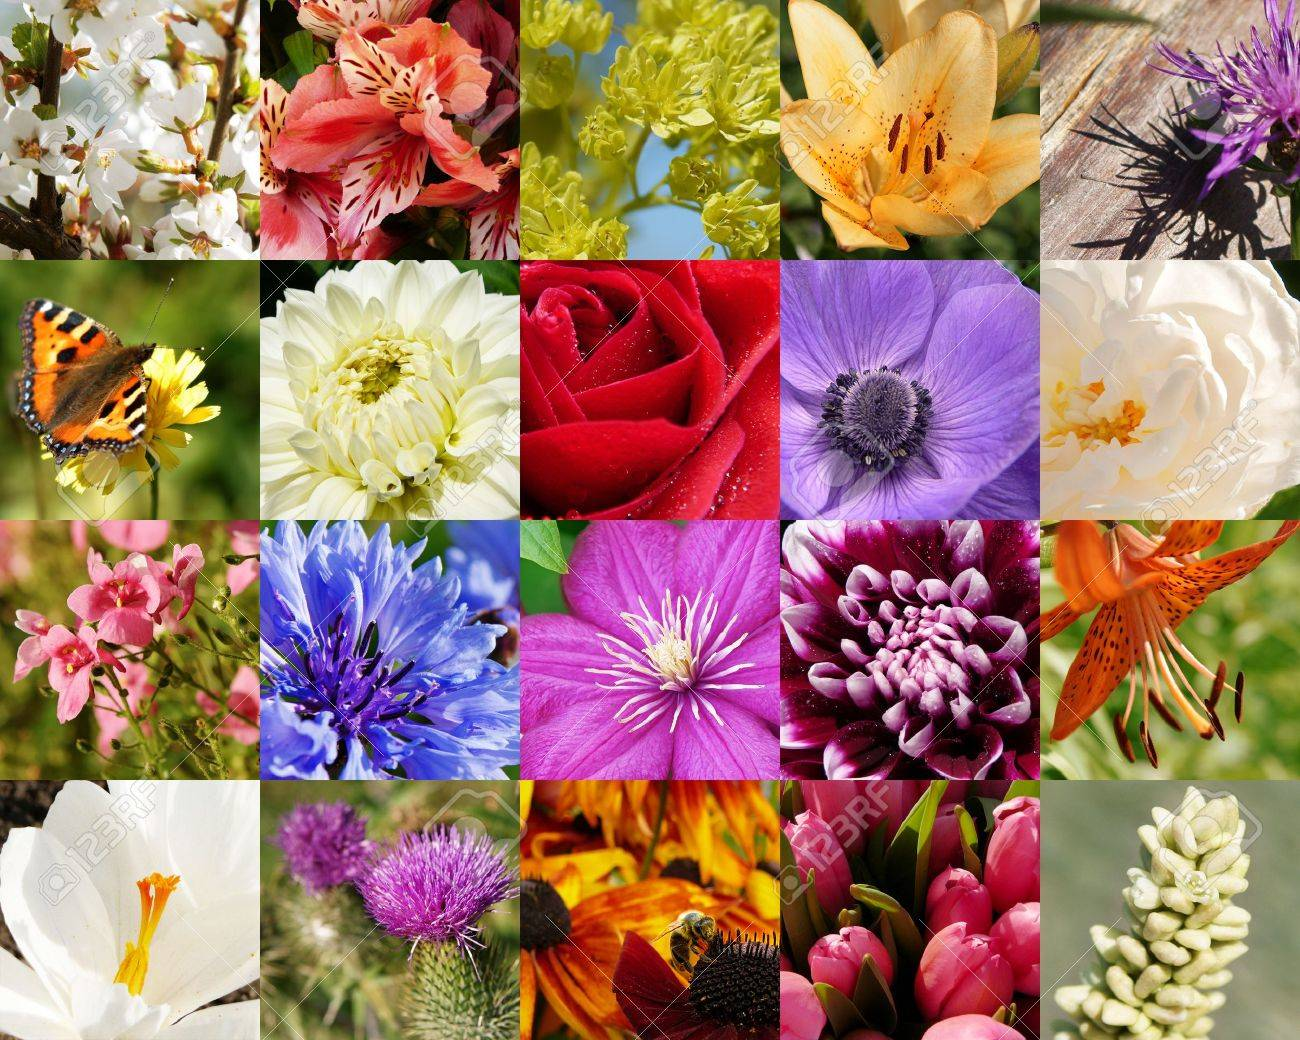 flowers macro collection: roses, lilies, clematis, dahlias, crocus, tulips, cherry blossom, anemone Stock Photo - 6225983